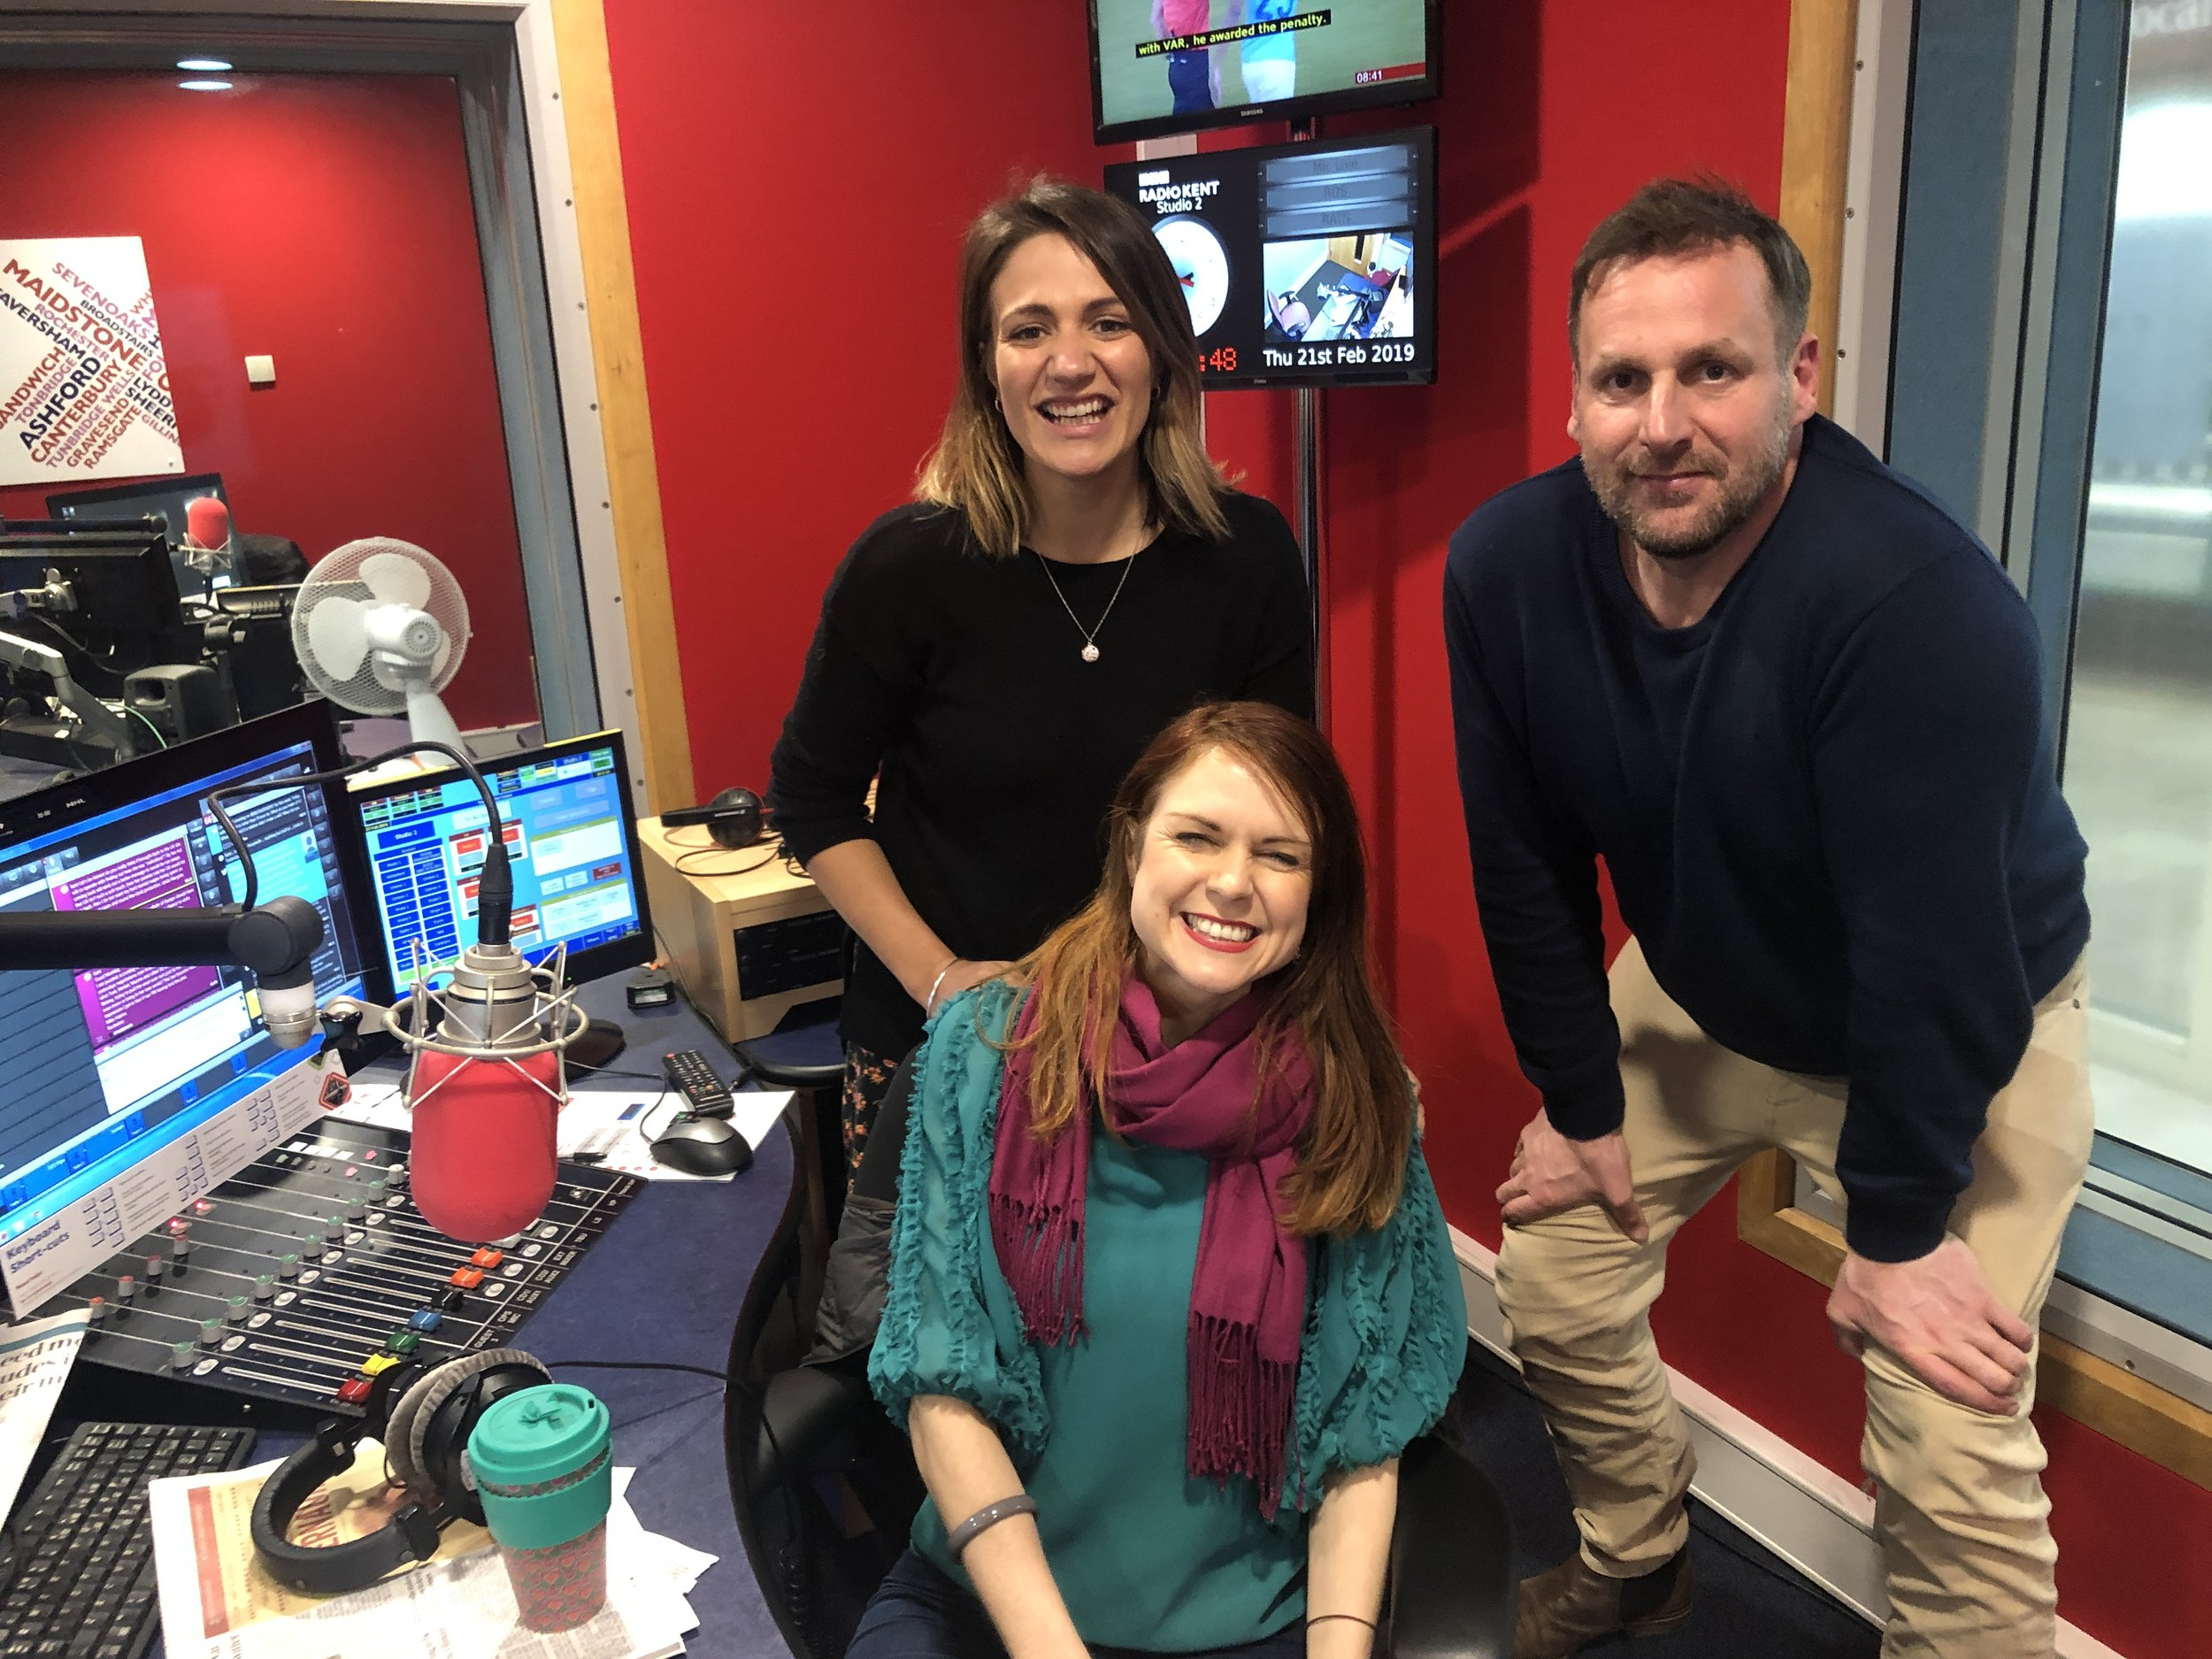 Wellness HQ at bbc radio kent - Our monthly slot on the Breakfast Show